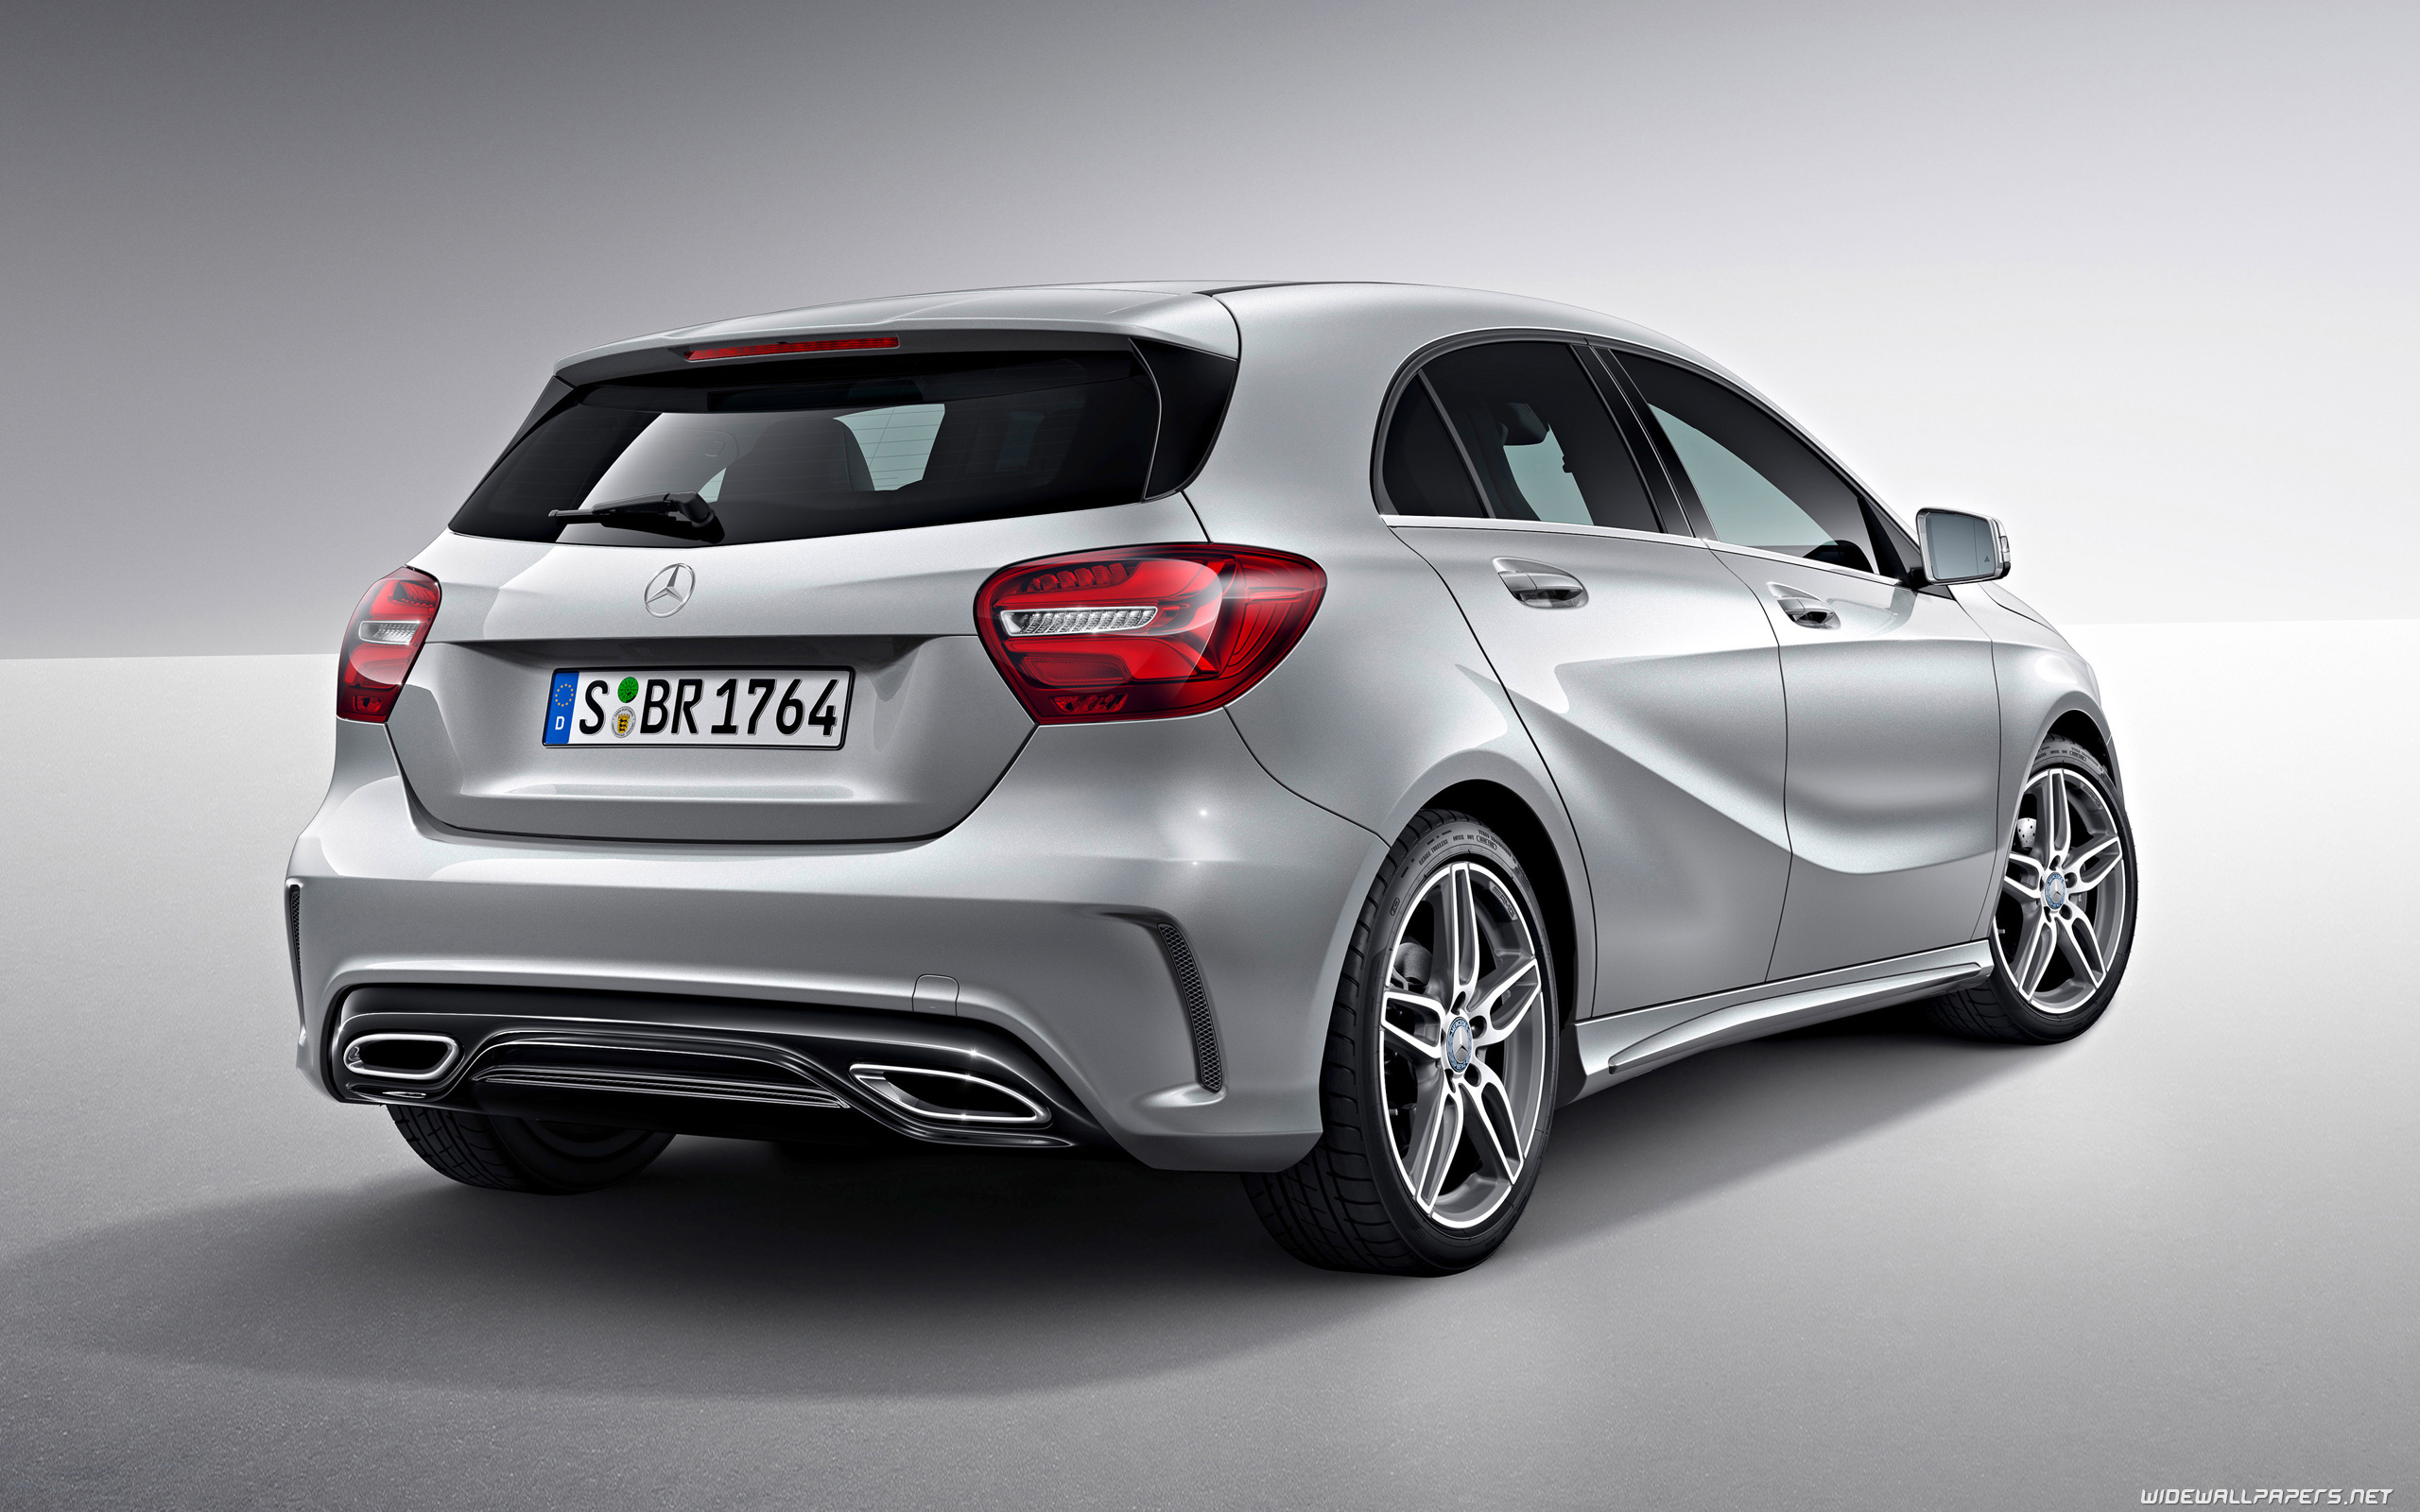 mercedes benz a class cars desktop wallpapers 4k ultra hd. Black Bedroom Furniture Sets. Home Design Ideas